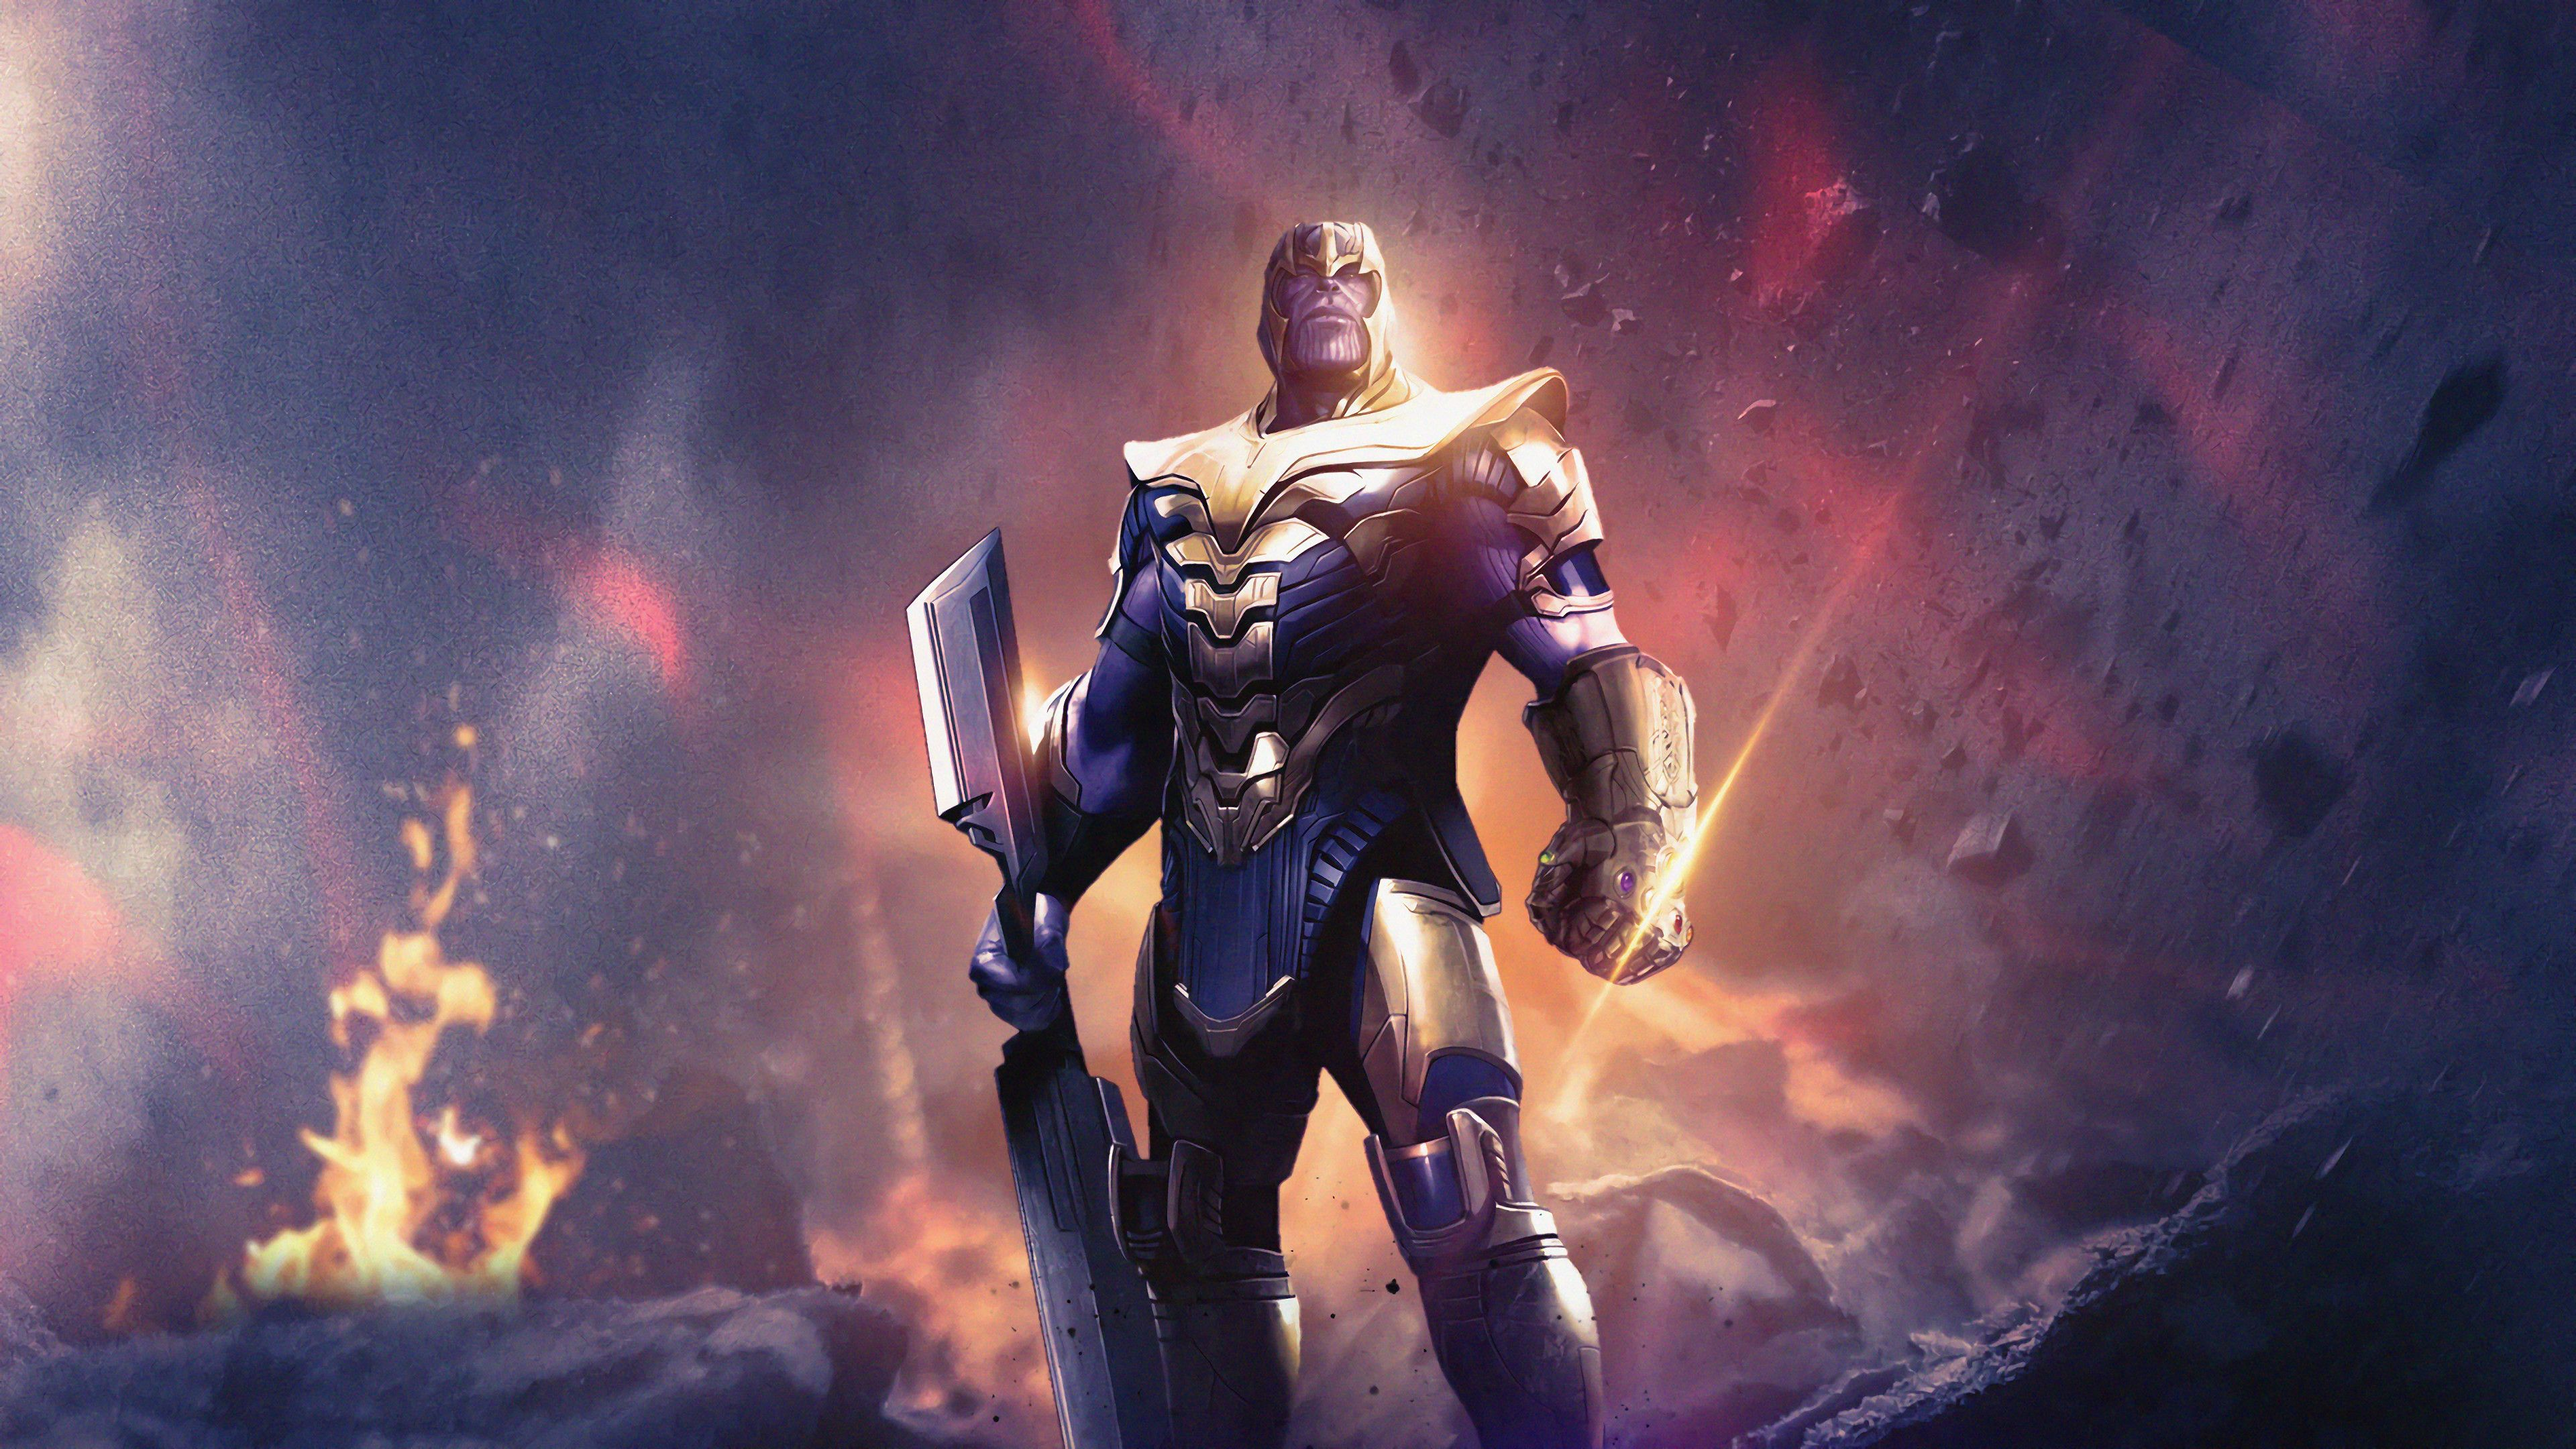 Thanos Sword Wallpapers Top Free Thanos Sword Backgrounds Wallpaperaccess